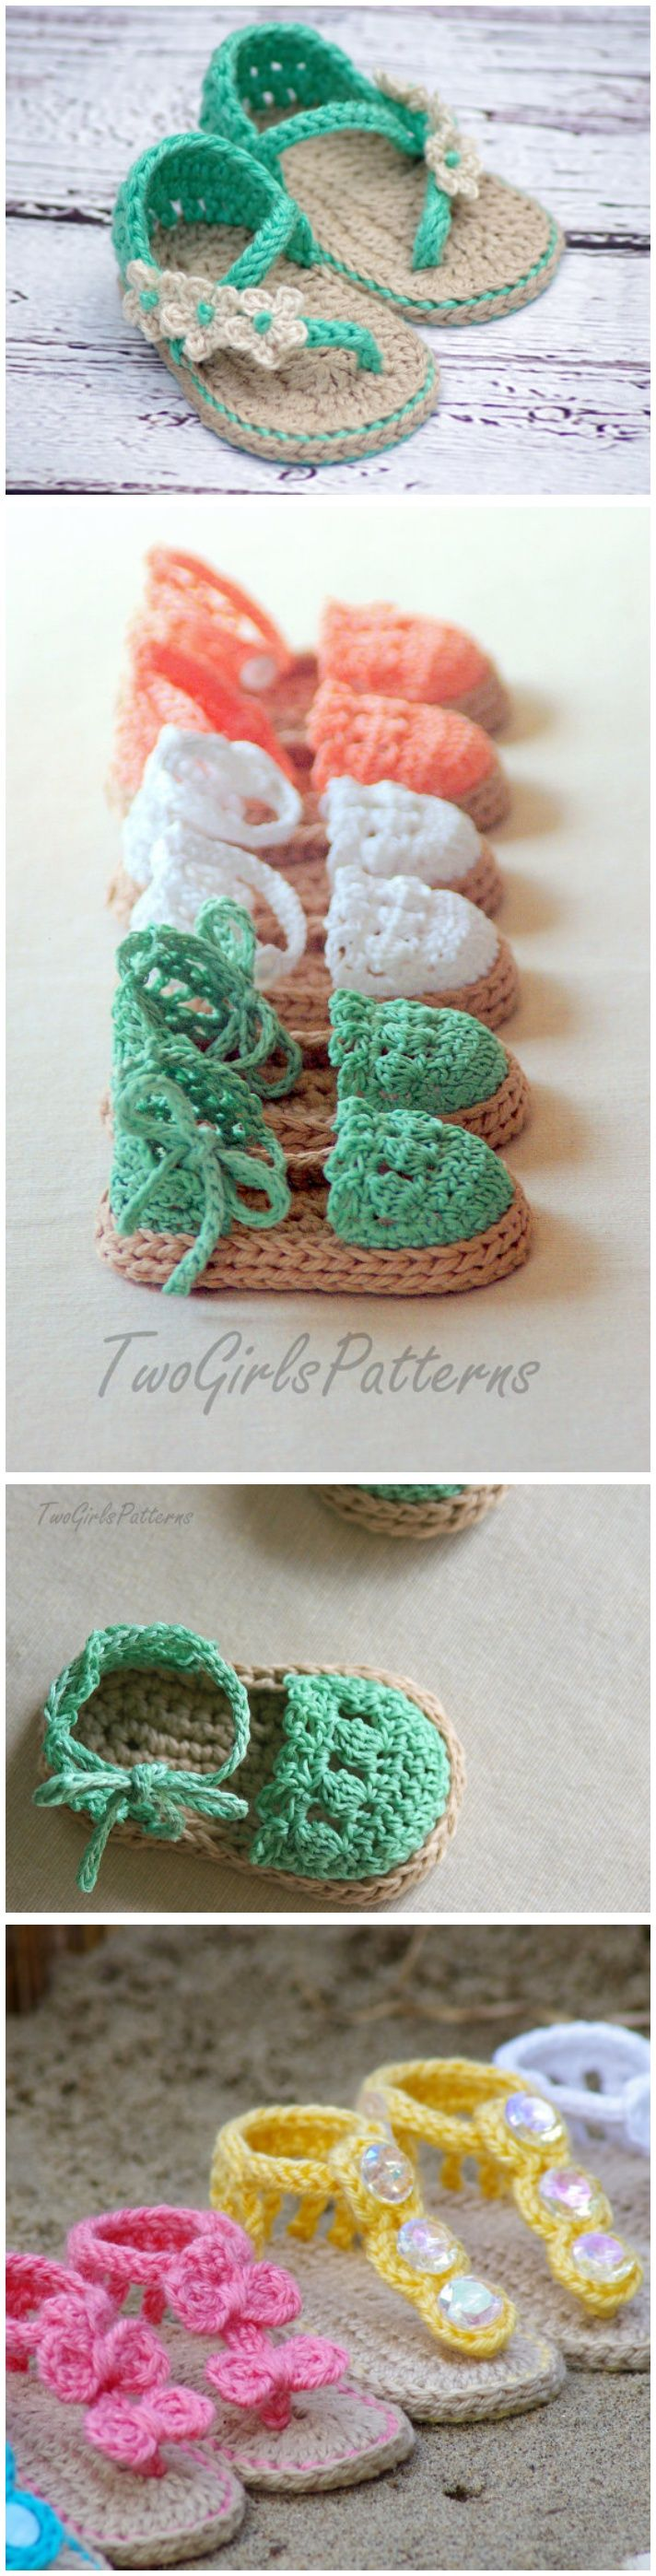 Baby Sandals Crochet Pattern                                                                                                                                                      More